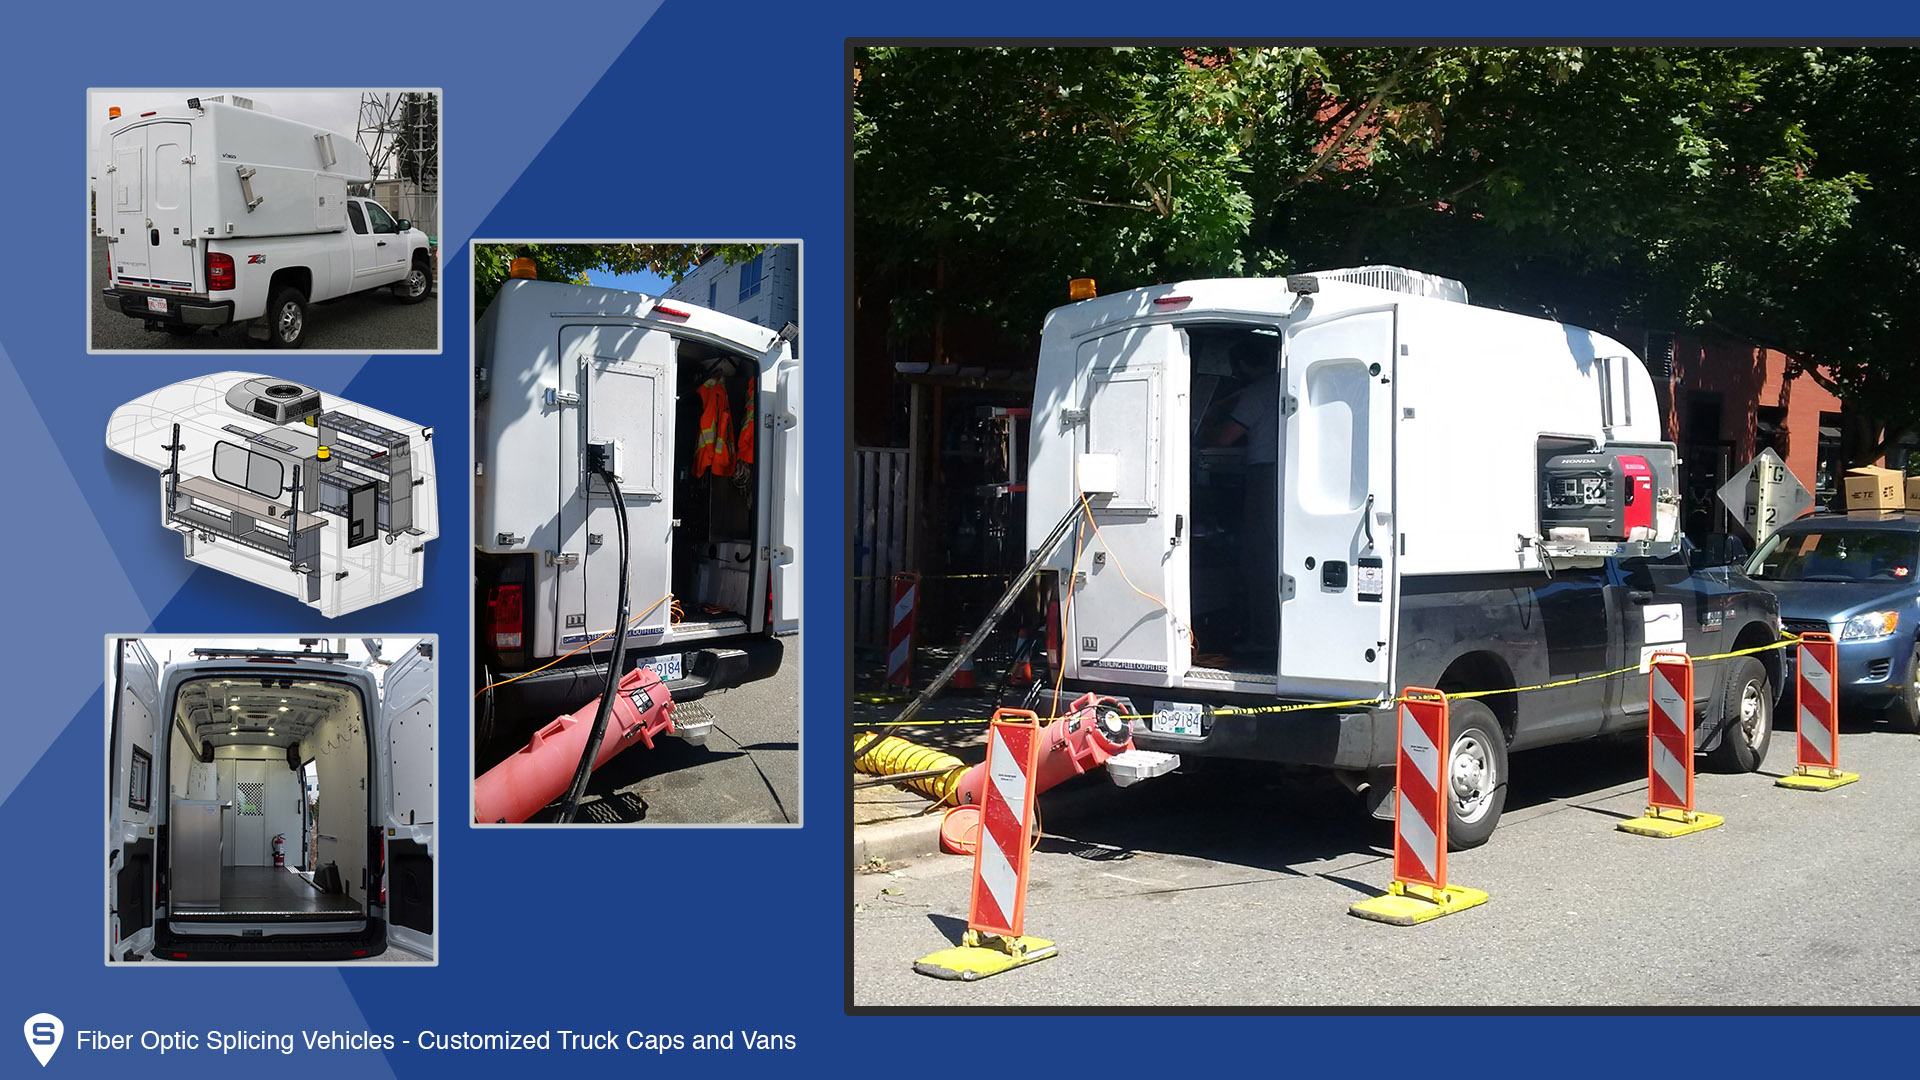 Fiber Optic Splicing Capsule and van shown at work as well as many of the features. You can see the small door latches which allow the cables to enter the cap or van and still control the internal temperature of your vehicle.